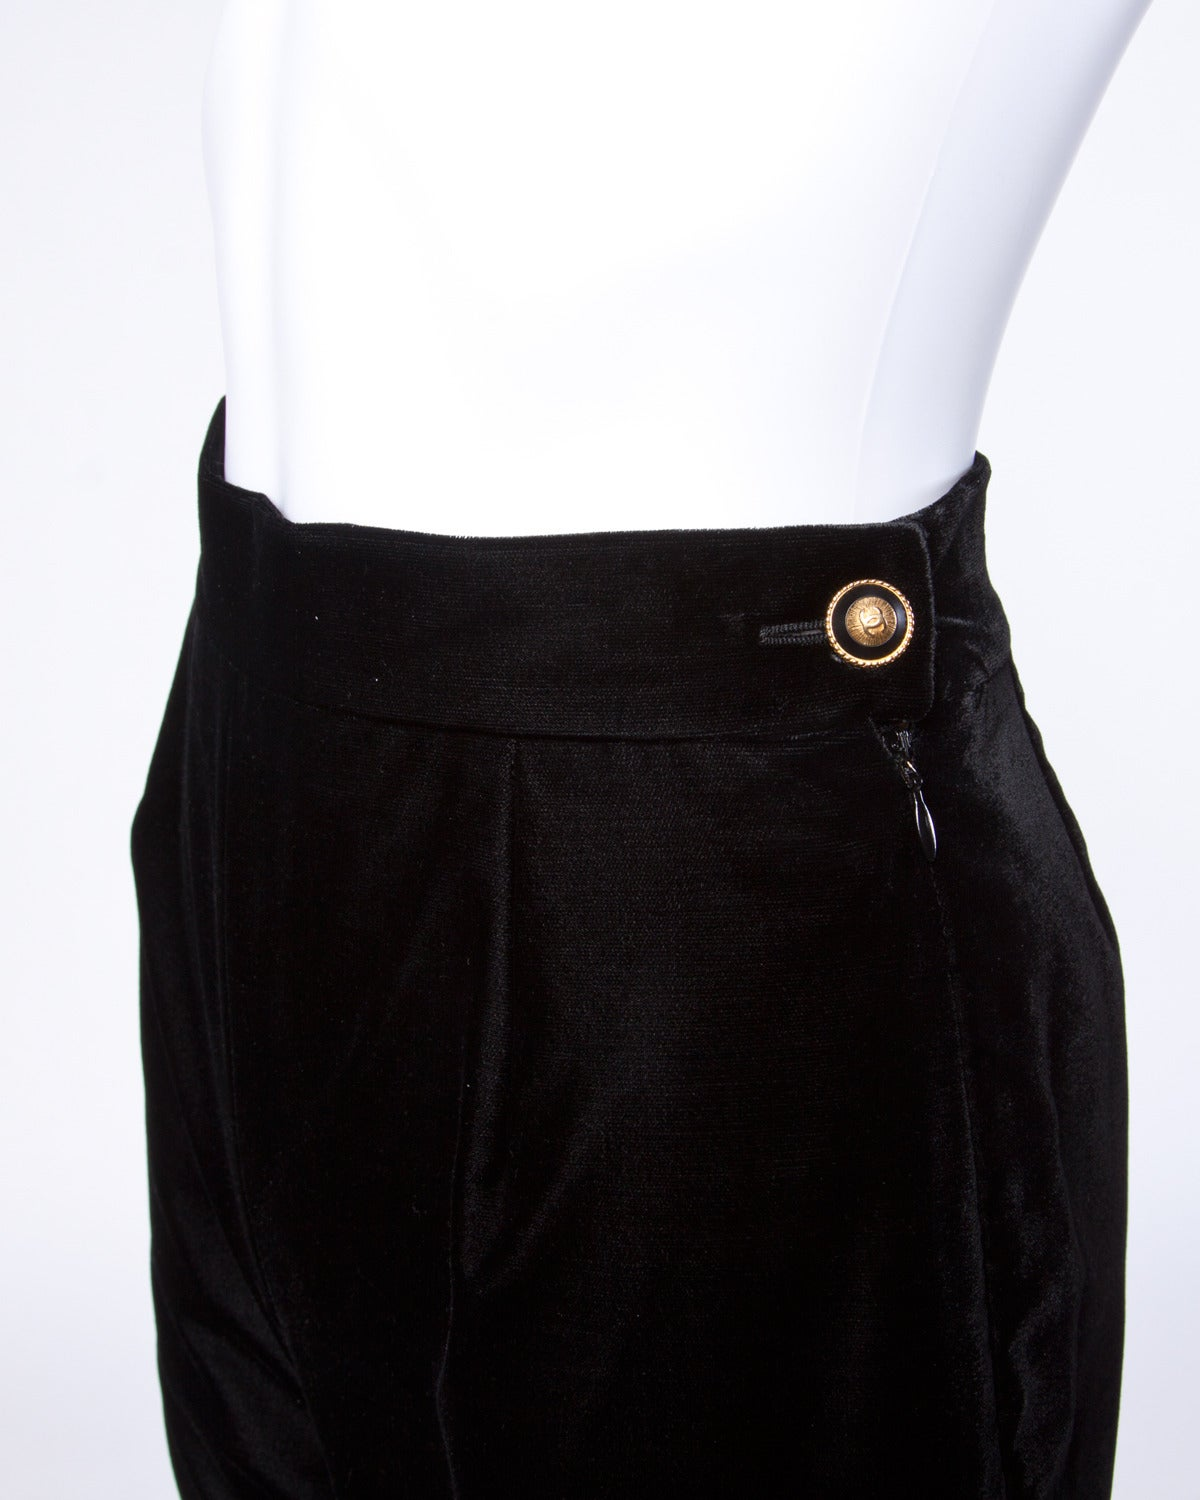 Gorgeous vintage Chanel black velvet drainpipe pants from Autumn of 1993. Decorative gold and black Chanel logo button on the side waist.  Details:  Fully Lined Side Zip and Button Closure Marked Size: 36 Estimated Size: XS Color: